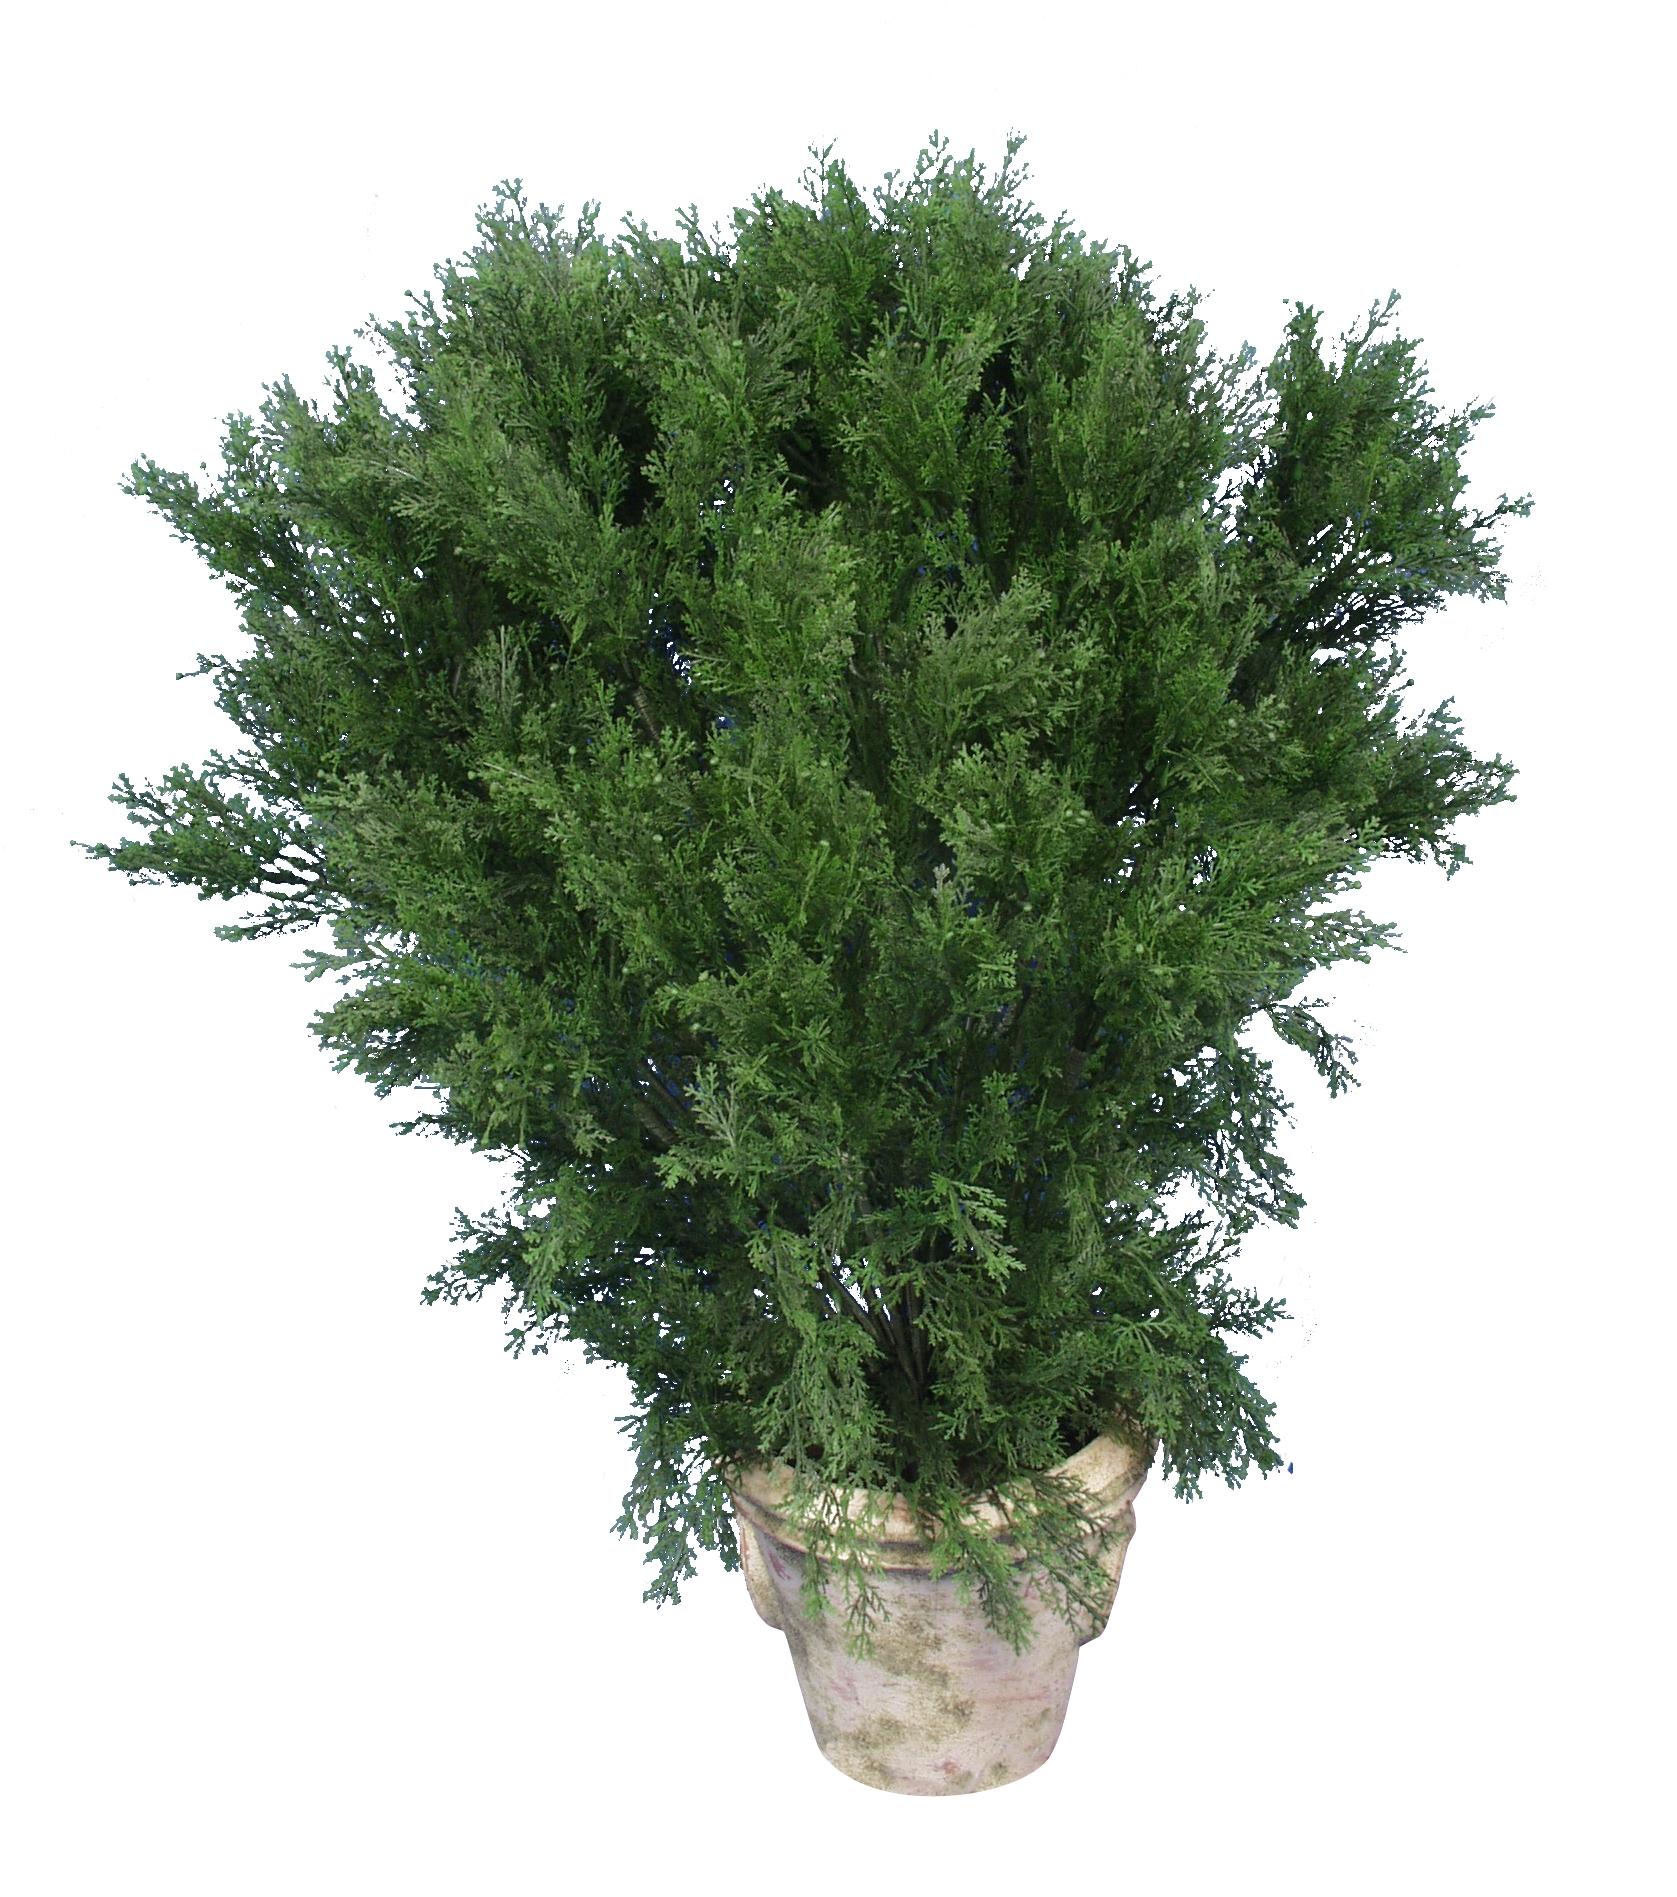 Spreading Cedar shrub